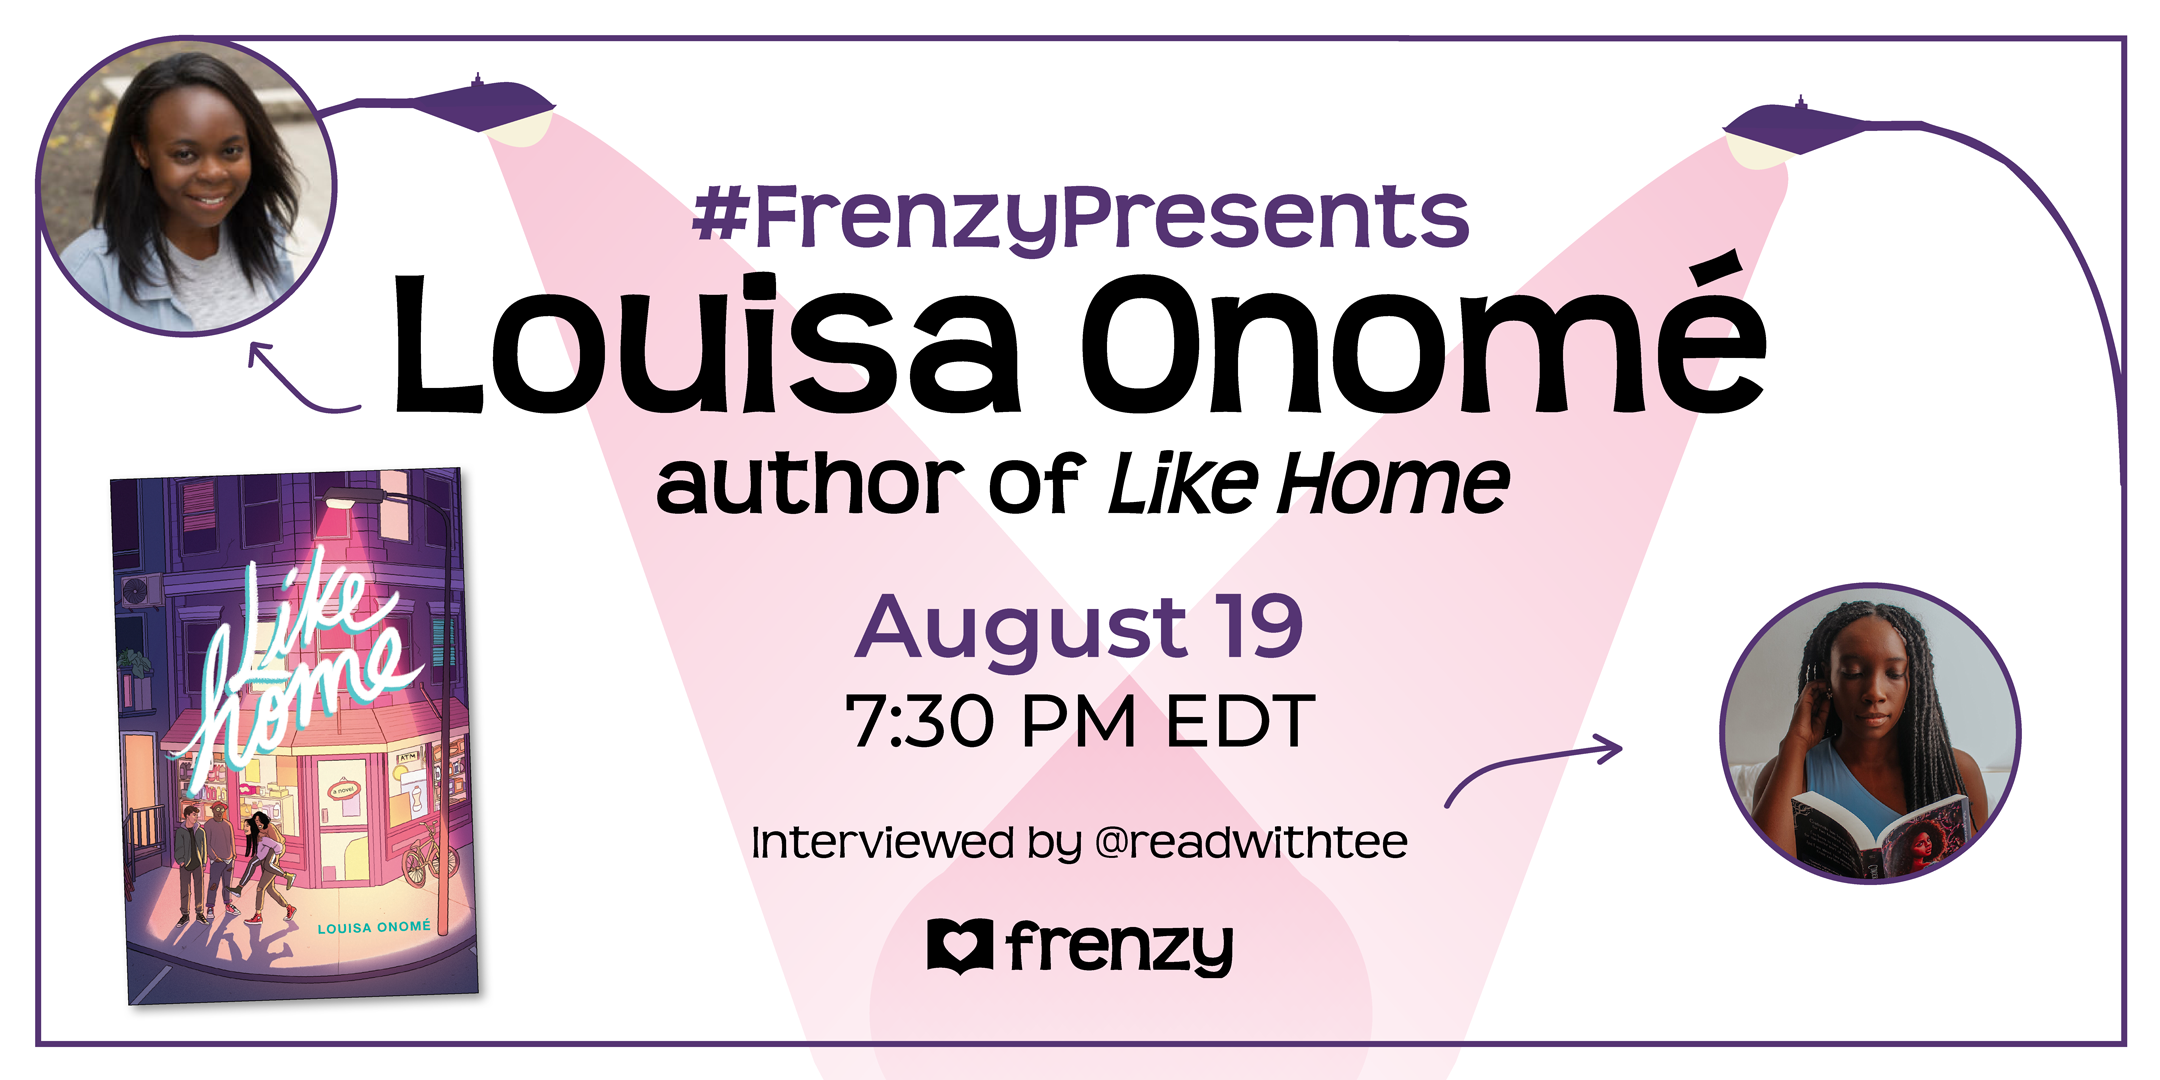 FrenzyPresents-Eventbrite-LouisaOnome